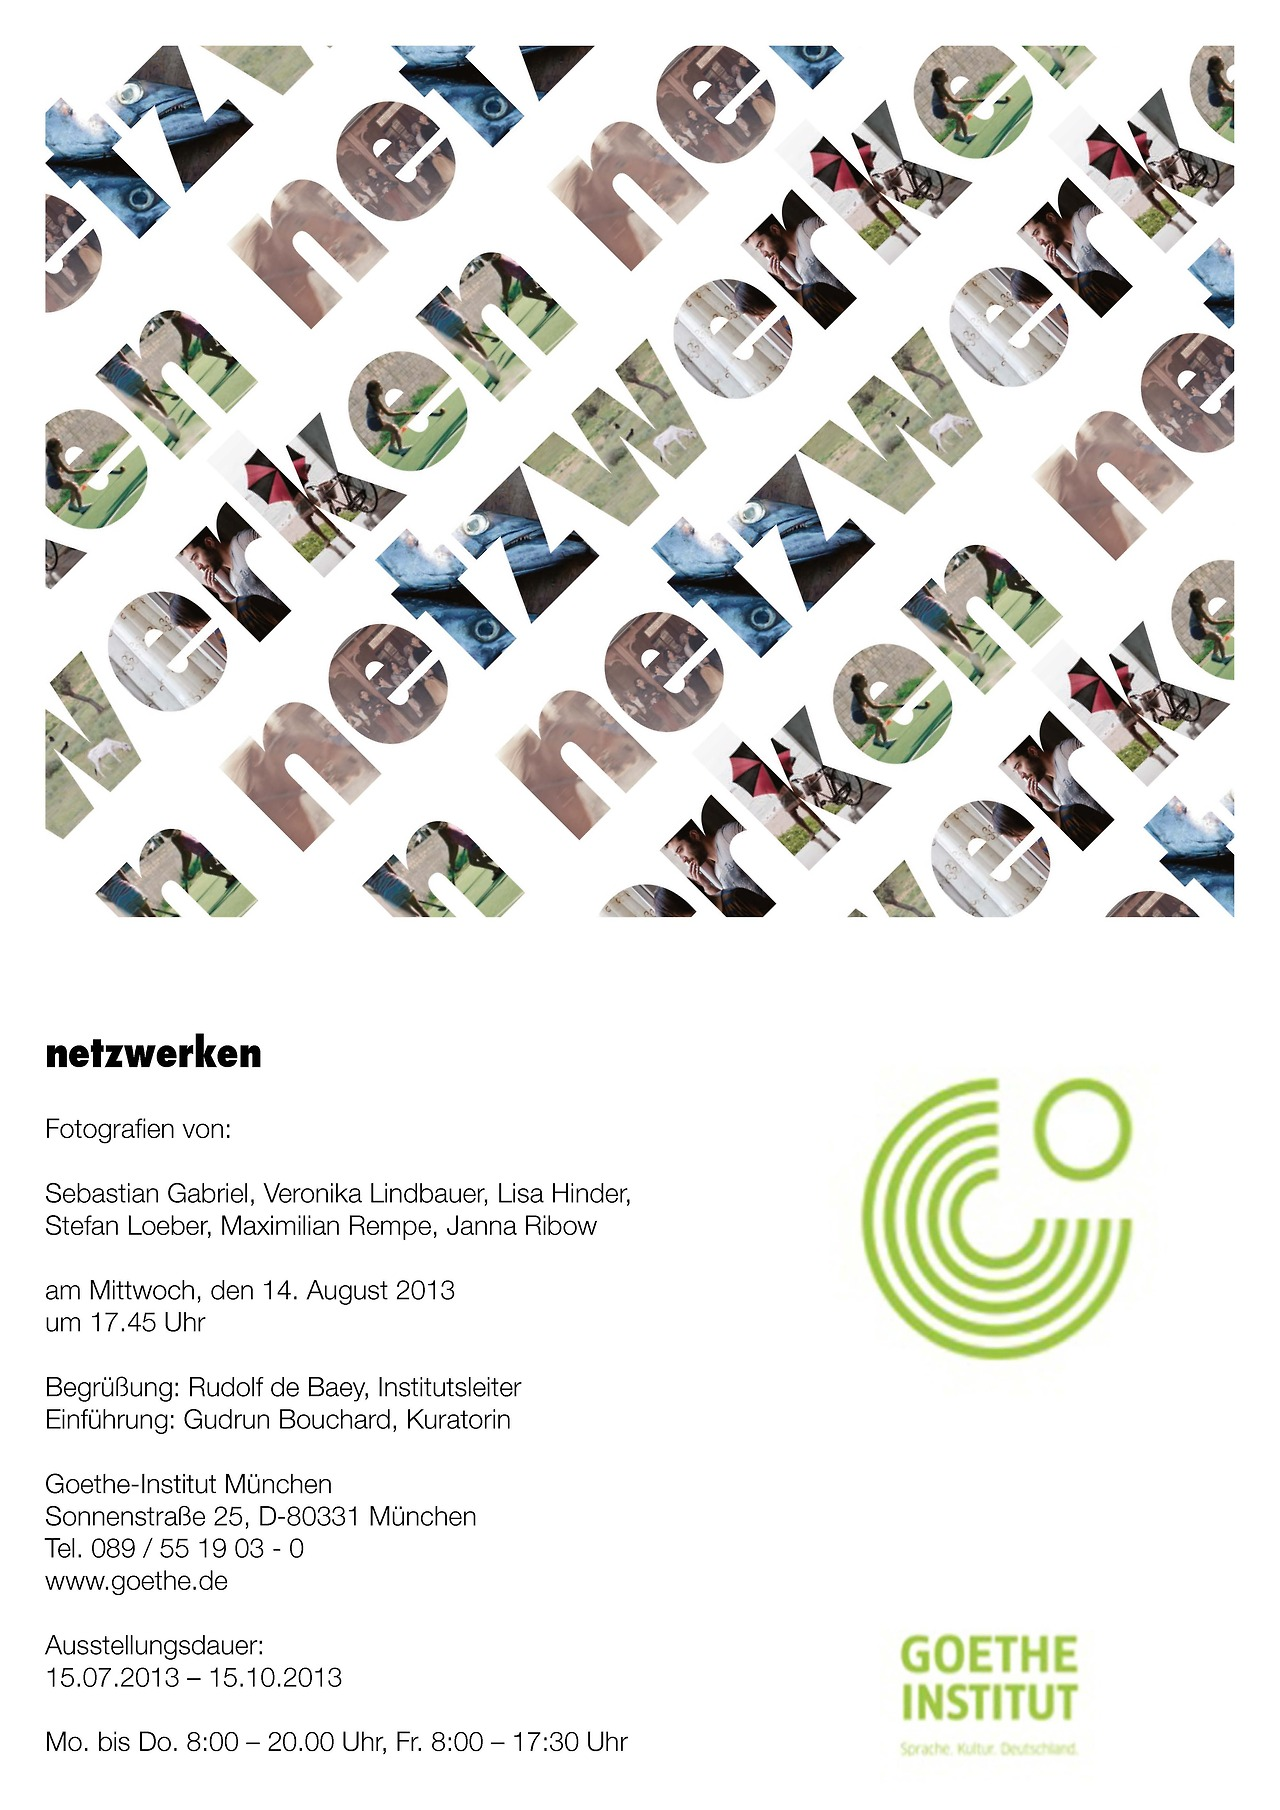 Exhibition - Goethe Institut - Munich